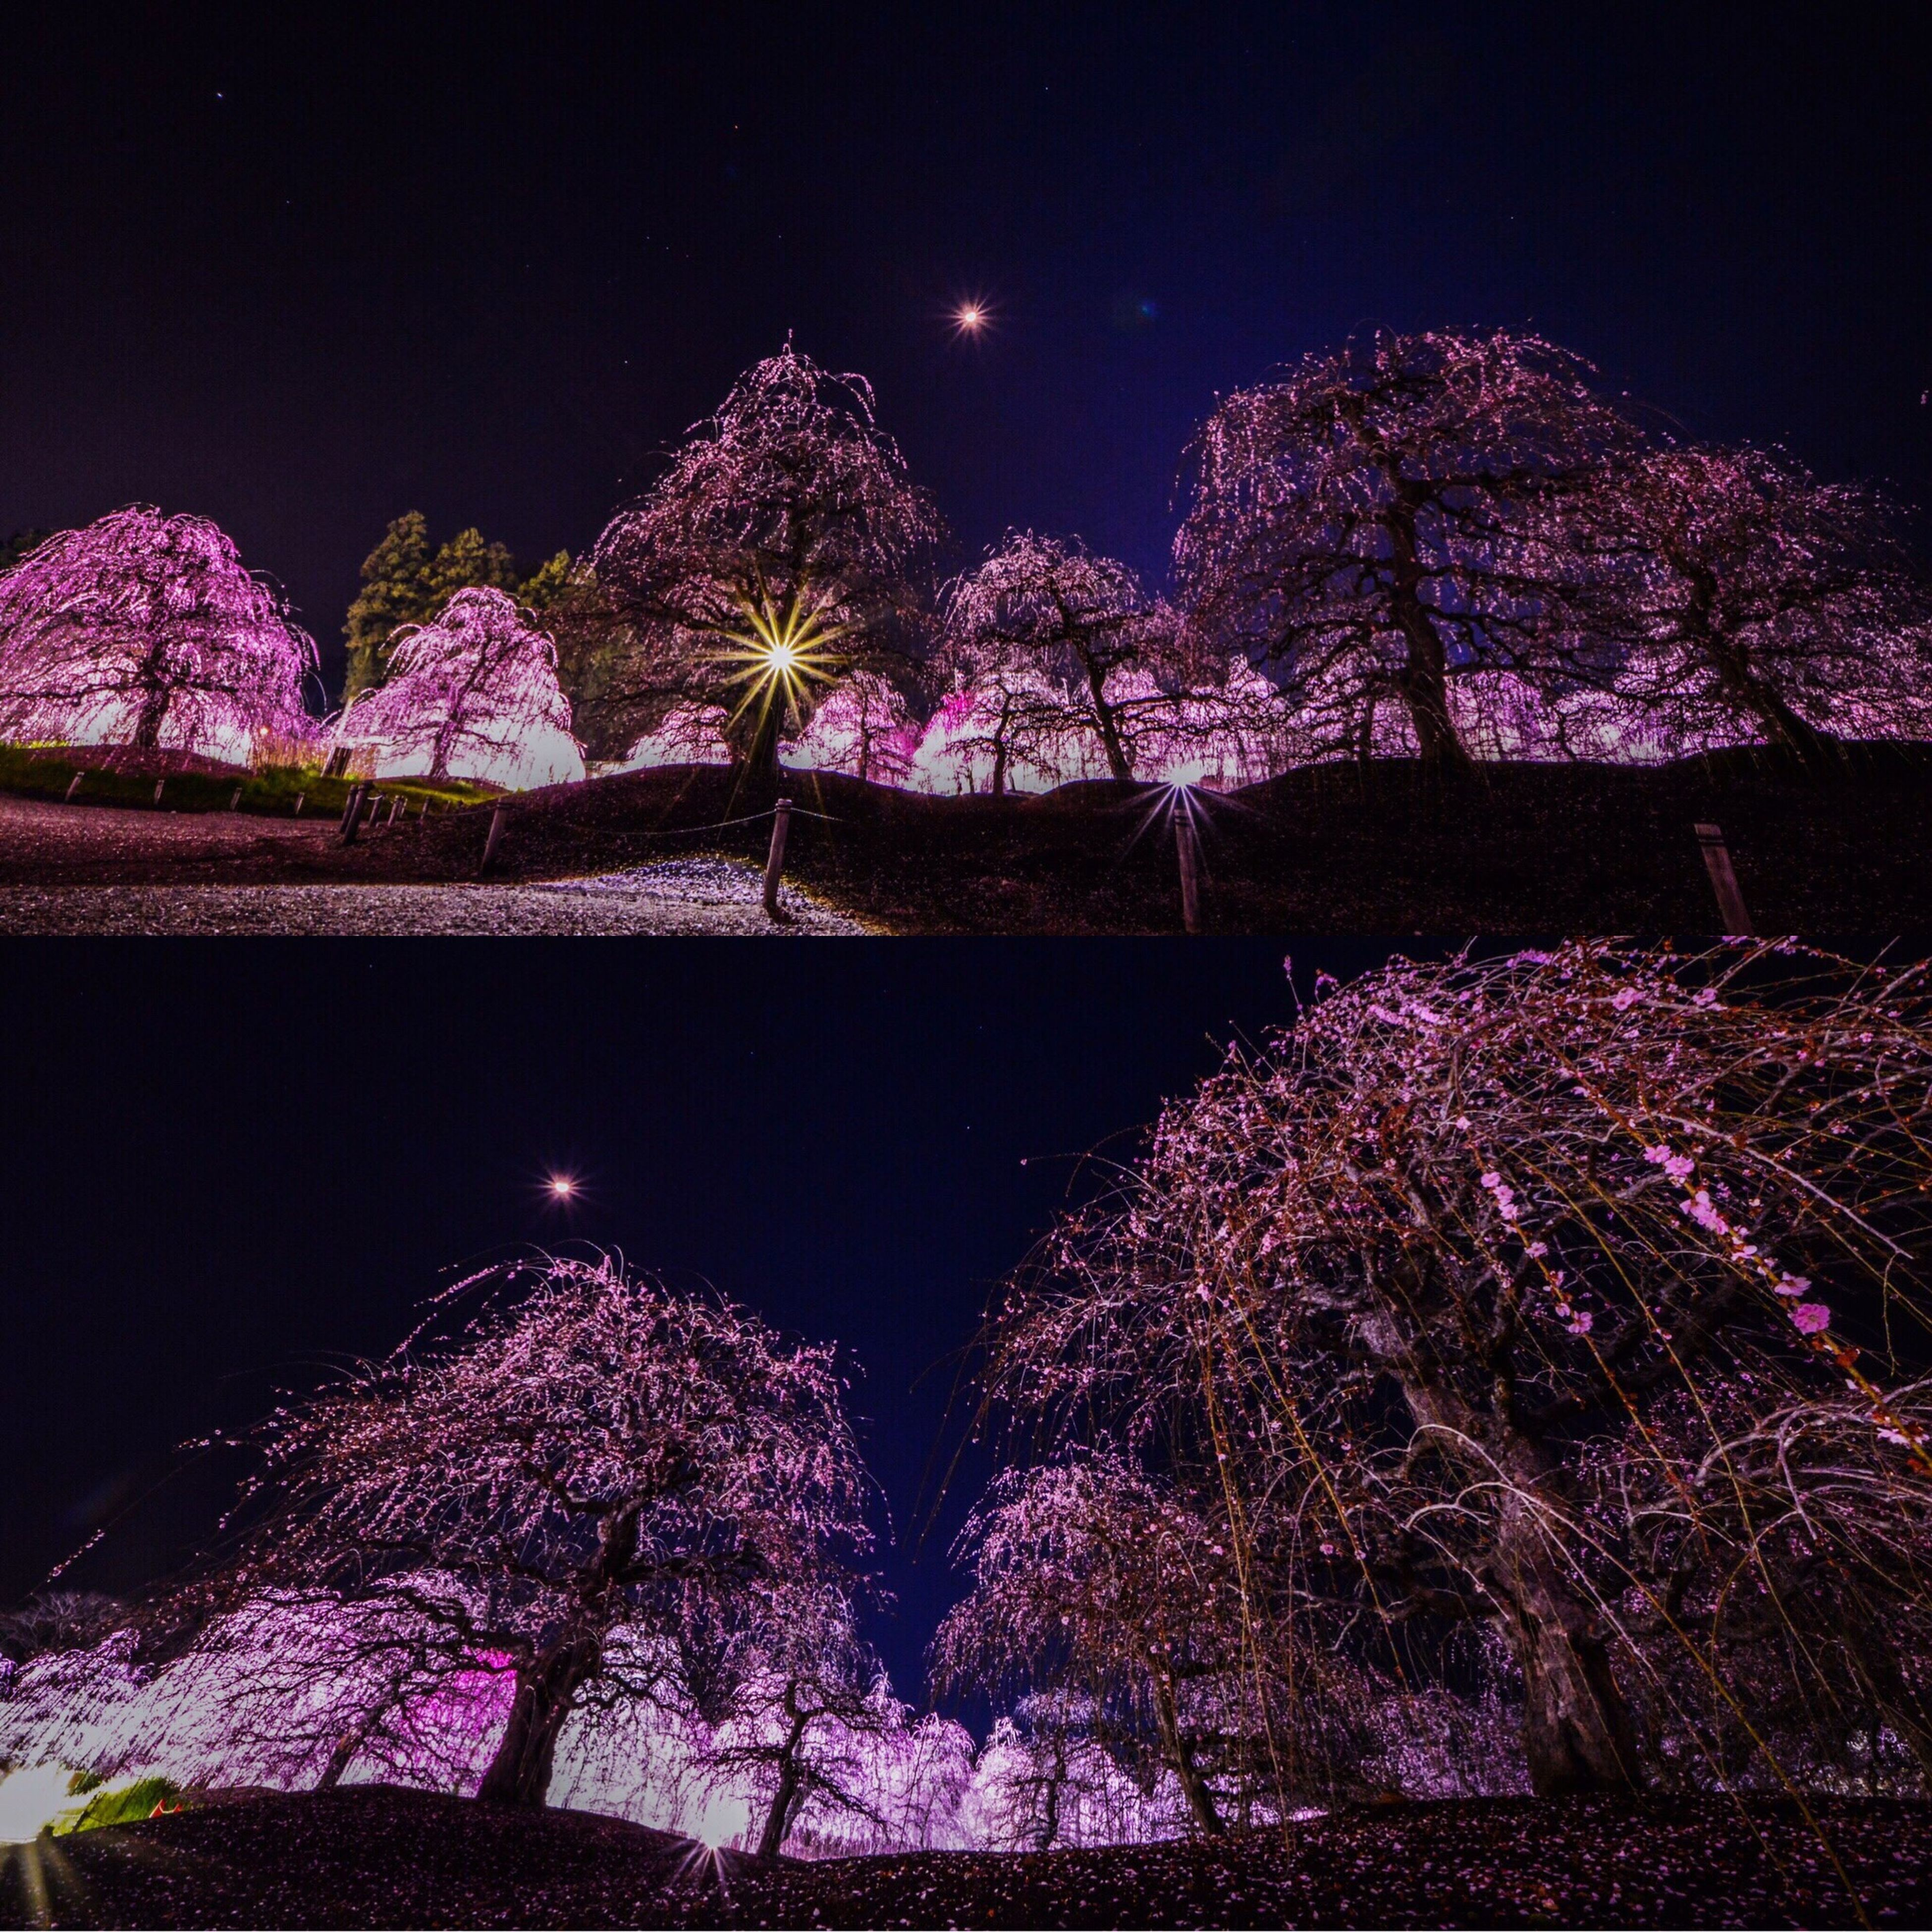 night, low angle view, no people, illuminated, pink color, outdoors, nature, sky, star - space, galaxy